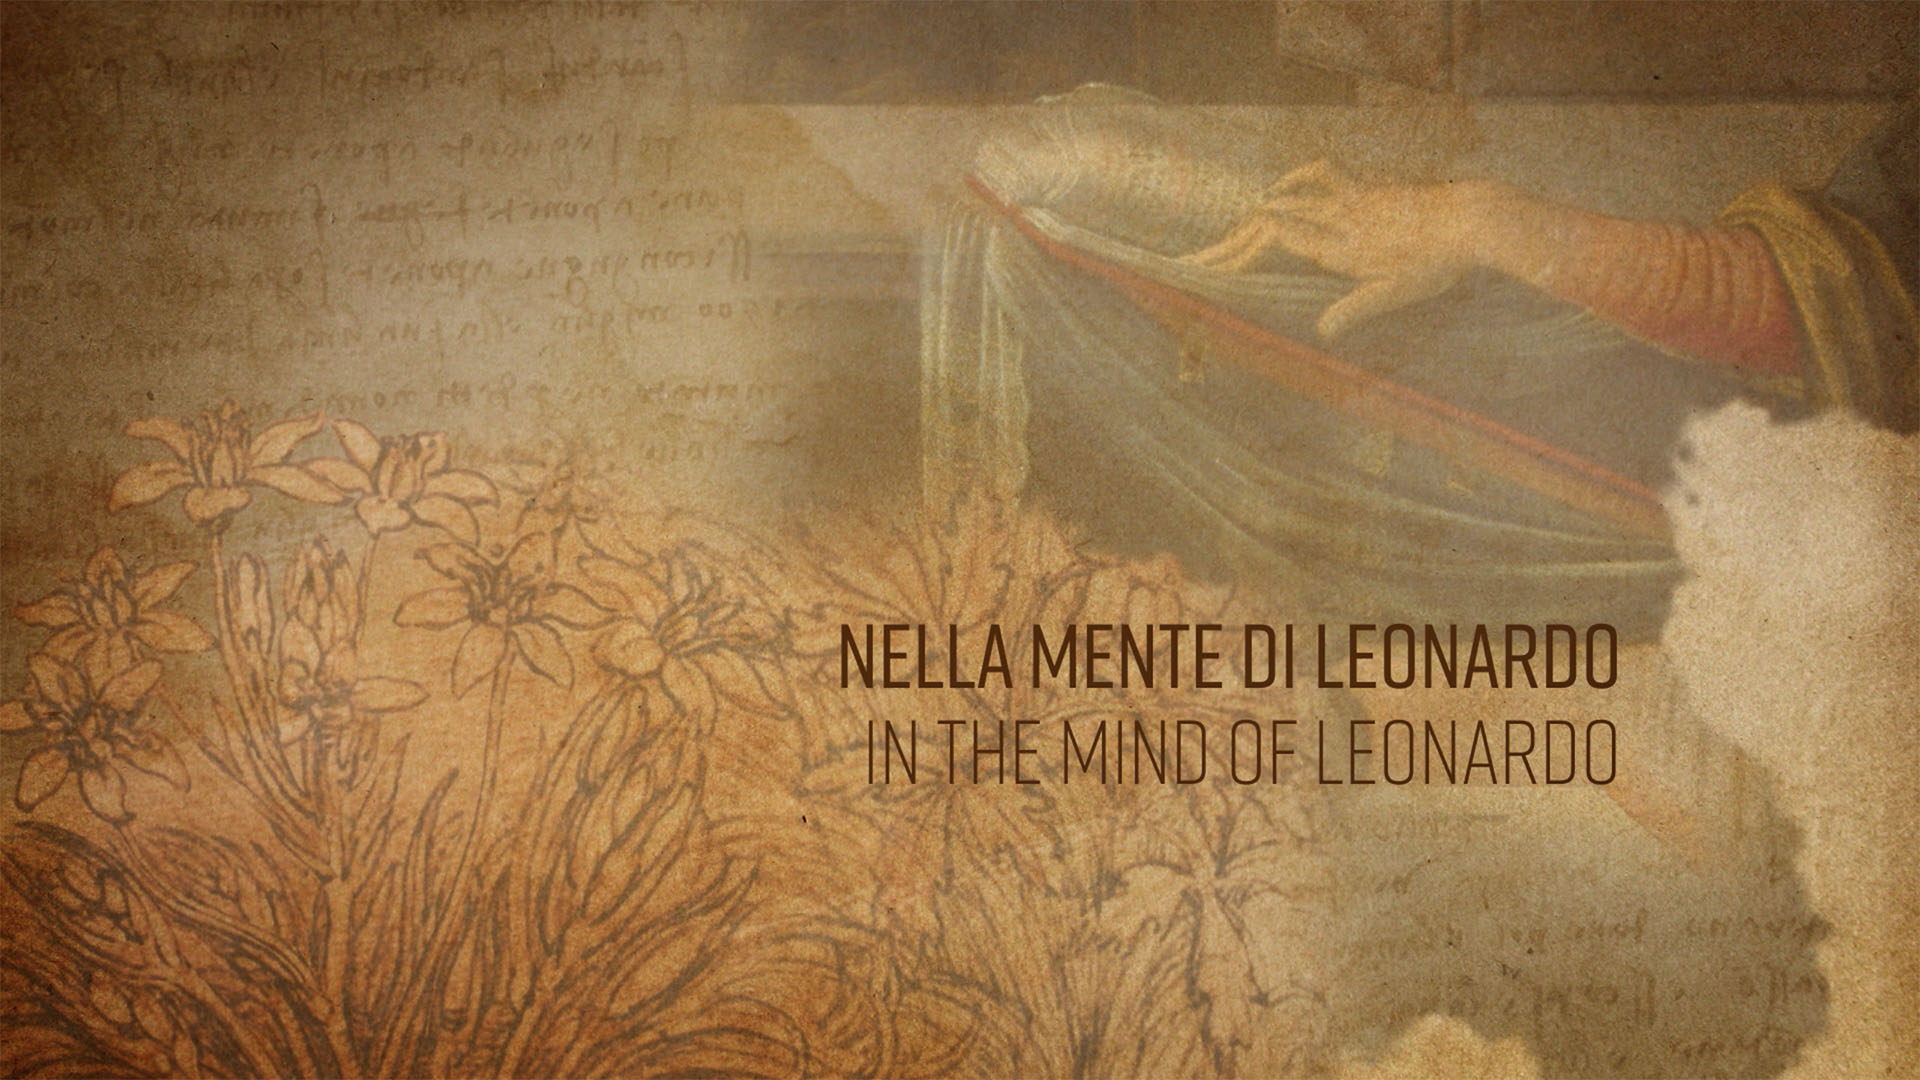 Nella mente di Leonardo / In the mind of Leonardo